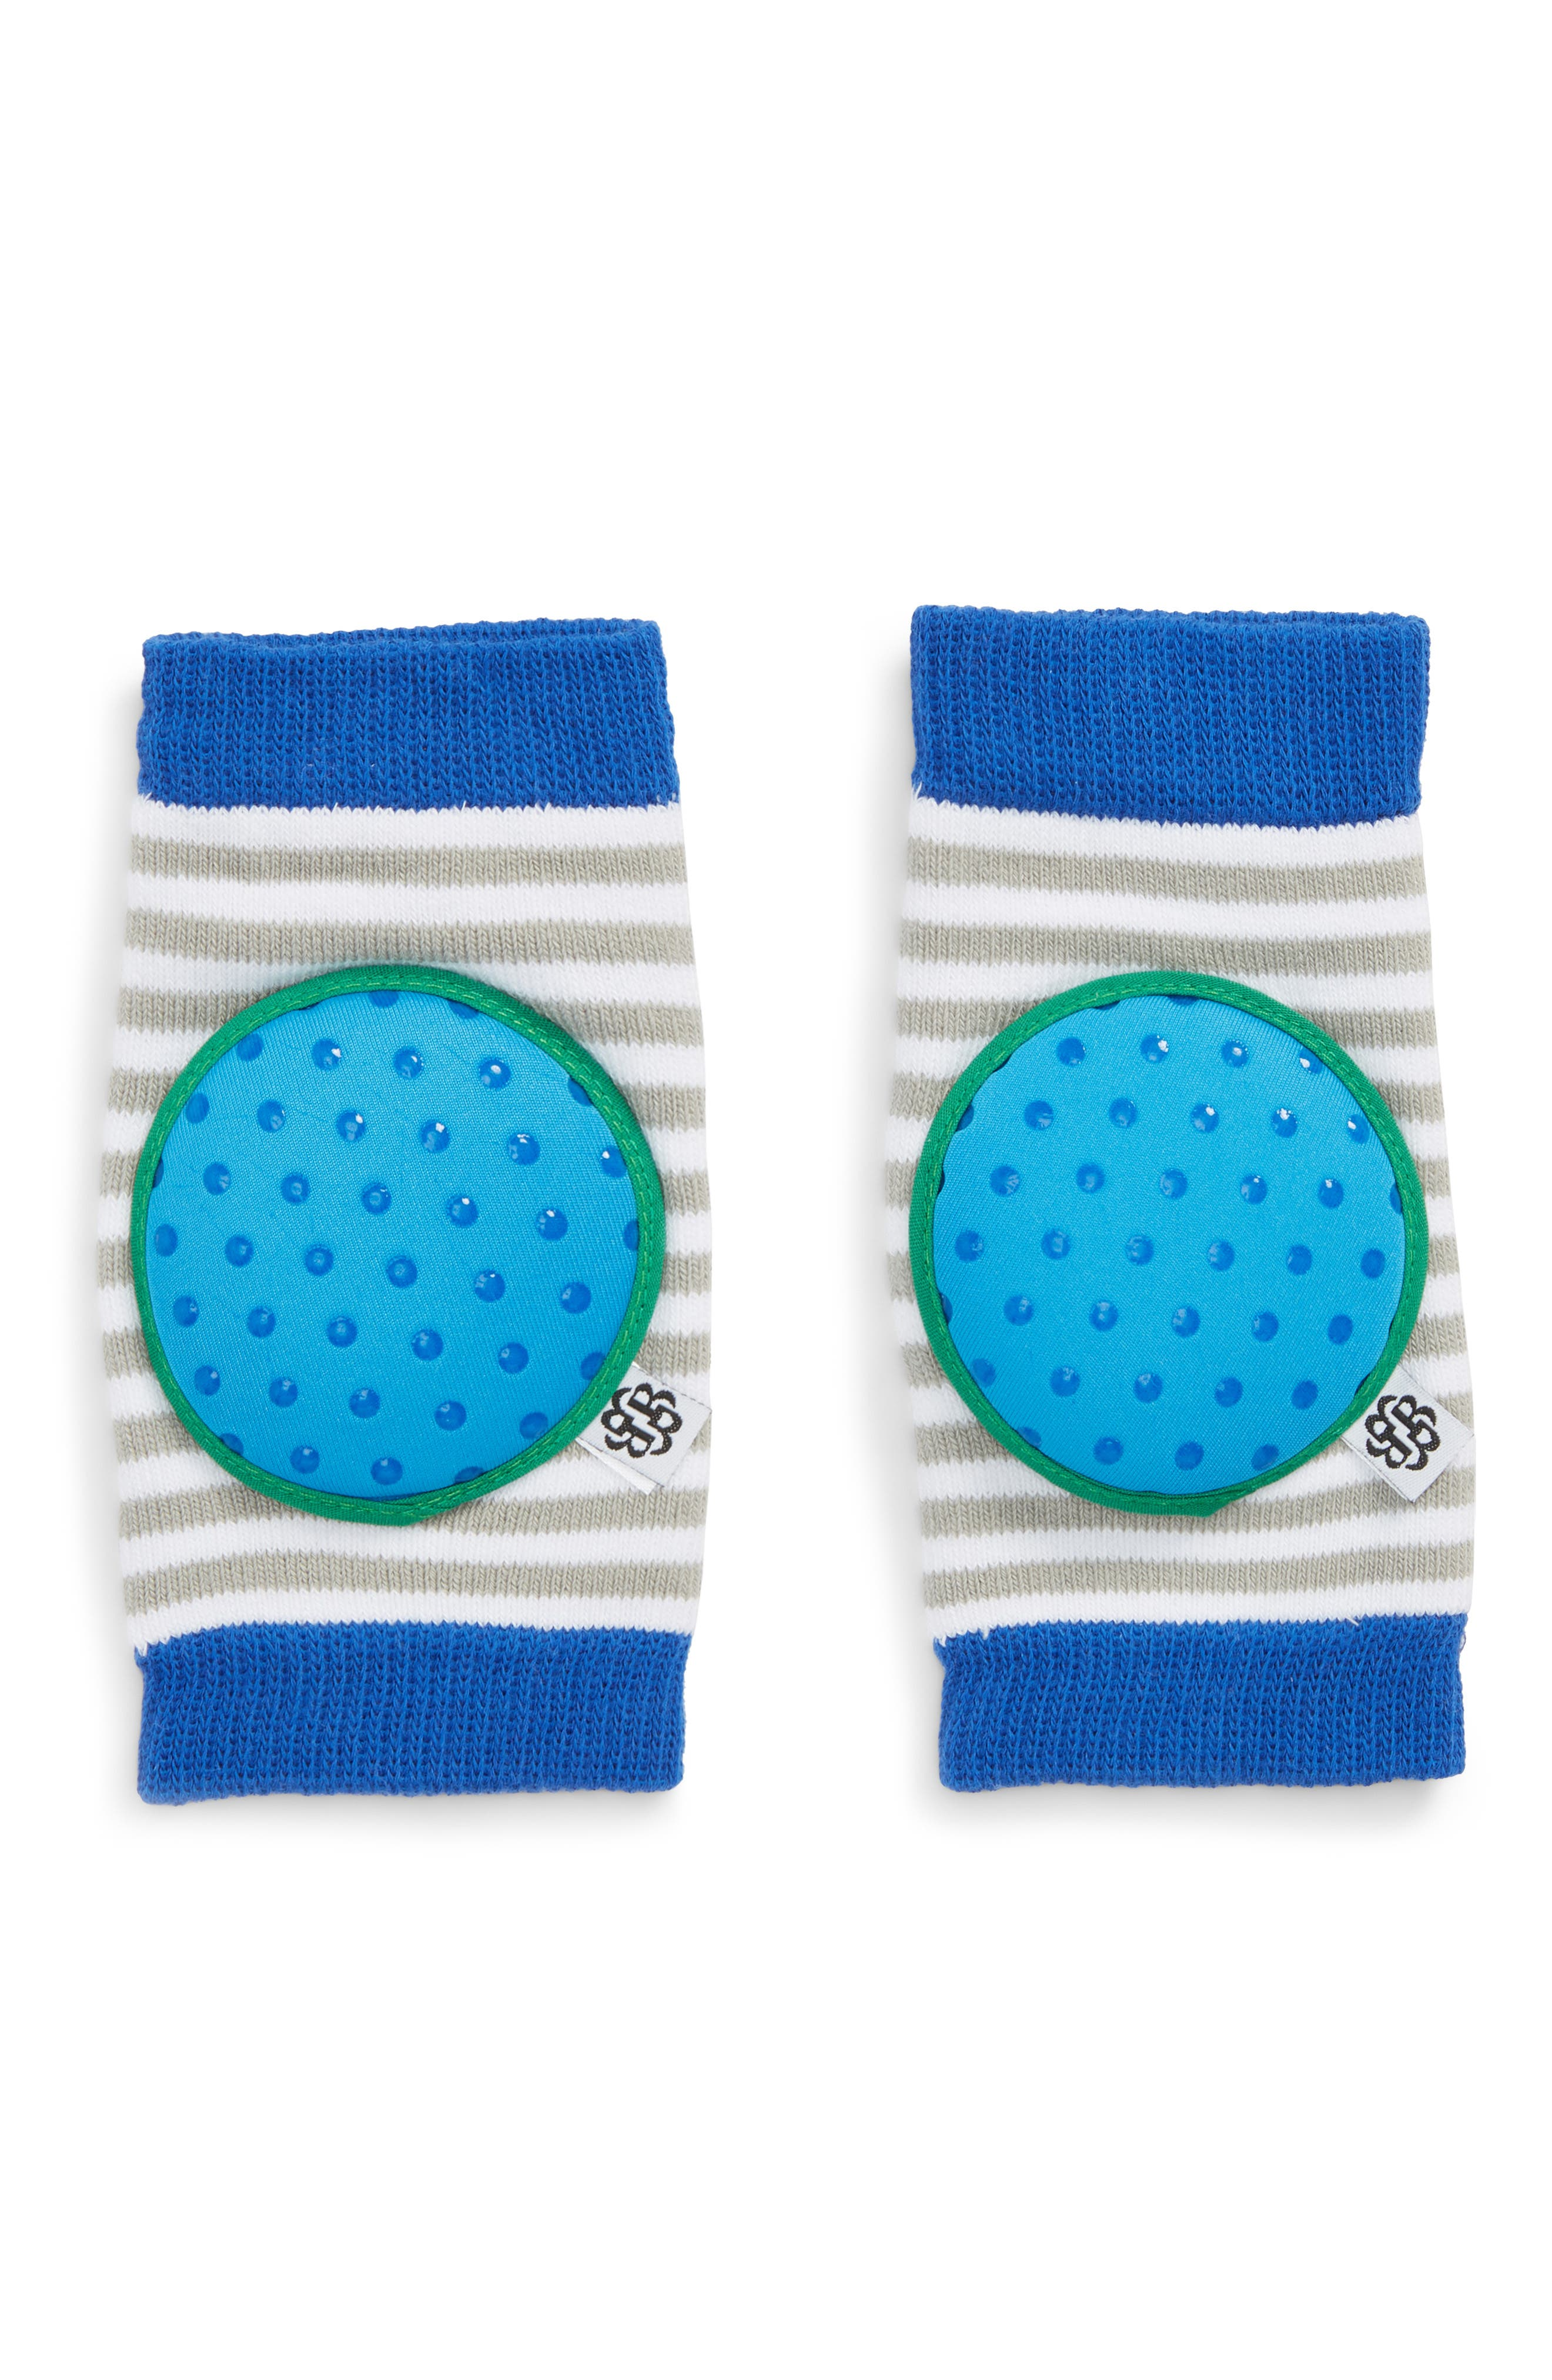 'Happy Knees' Protective Knee Pads,                         Main,                         color, BINGO BLUE